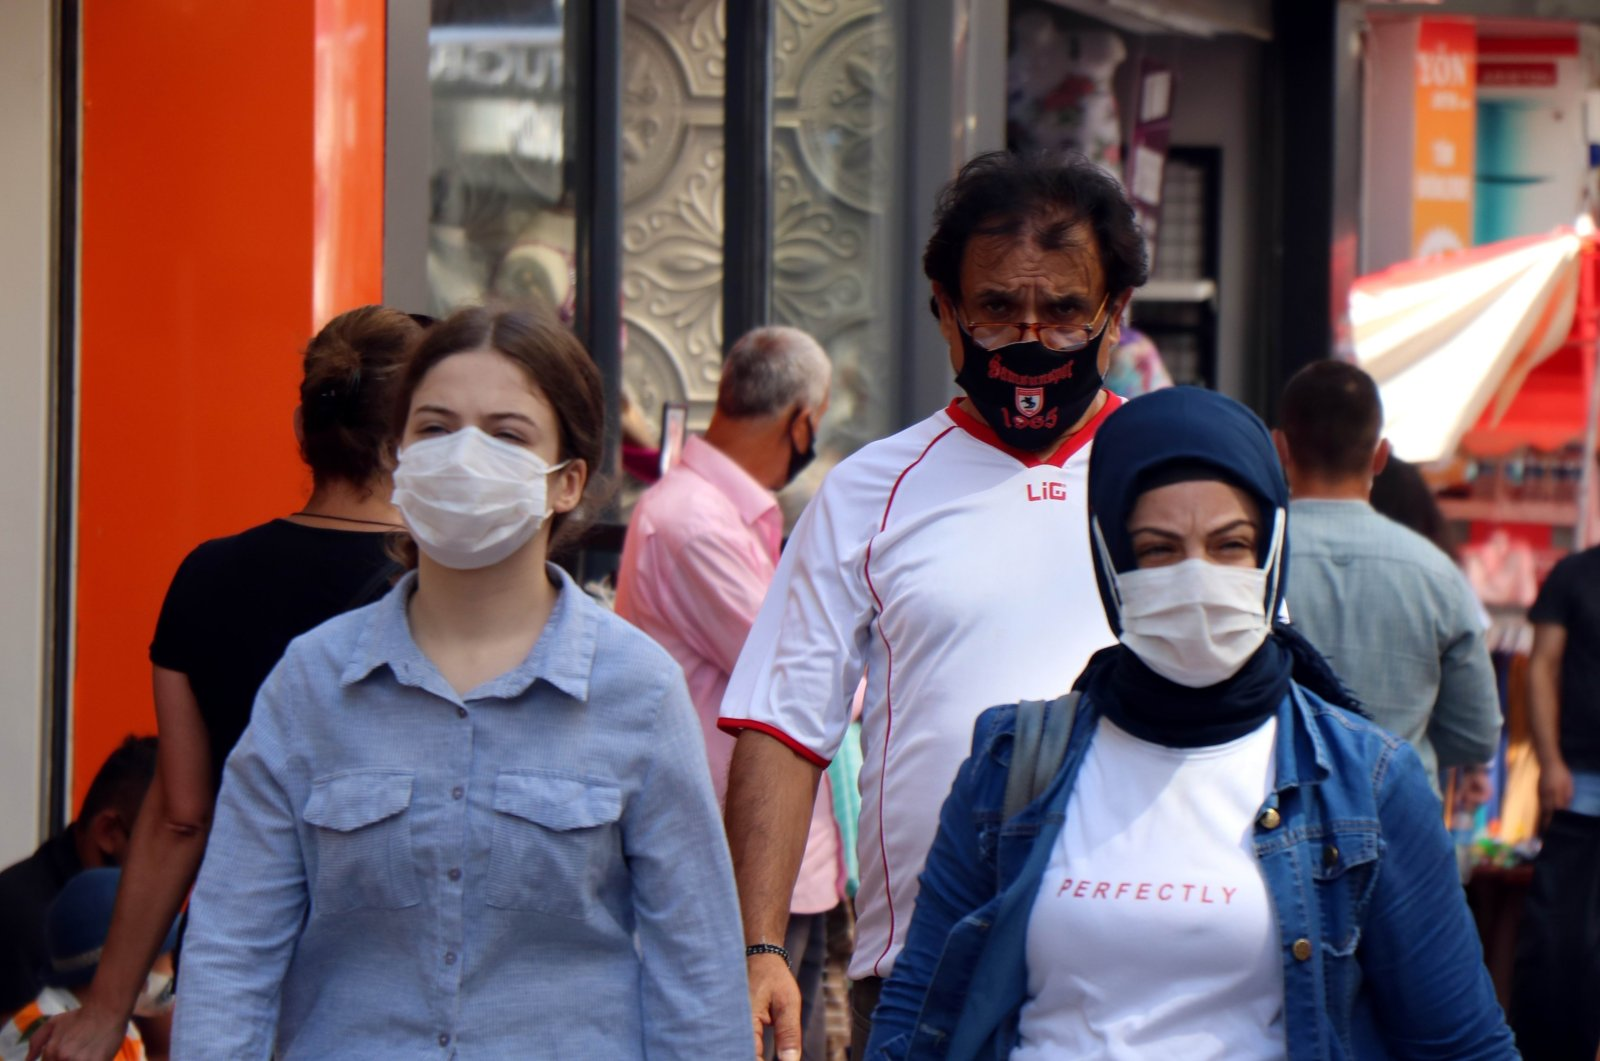 People wearing face masks walk on a street in Samsun, northern Turkey, Aug. 21, 2020. (IHA Photo)